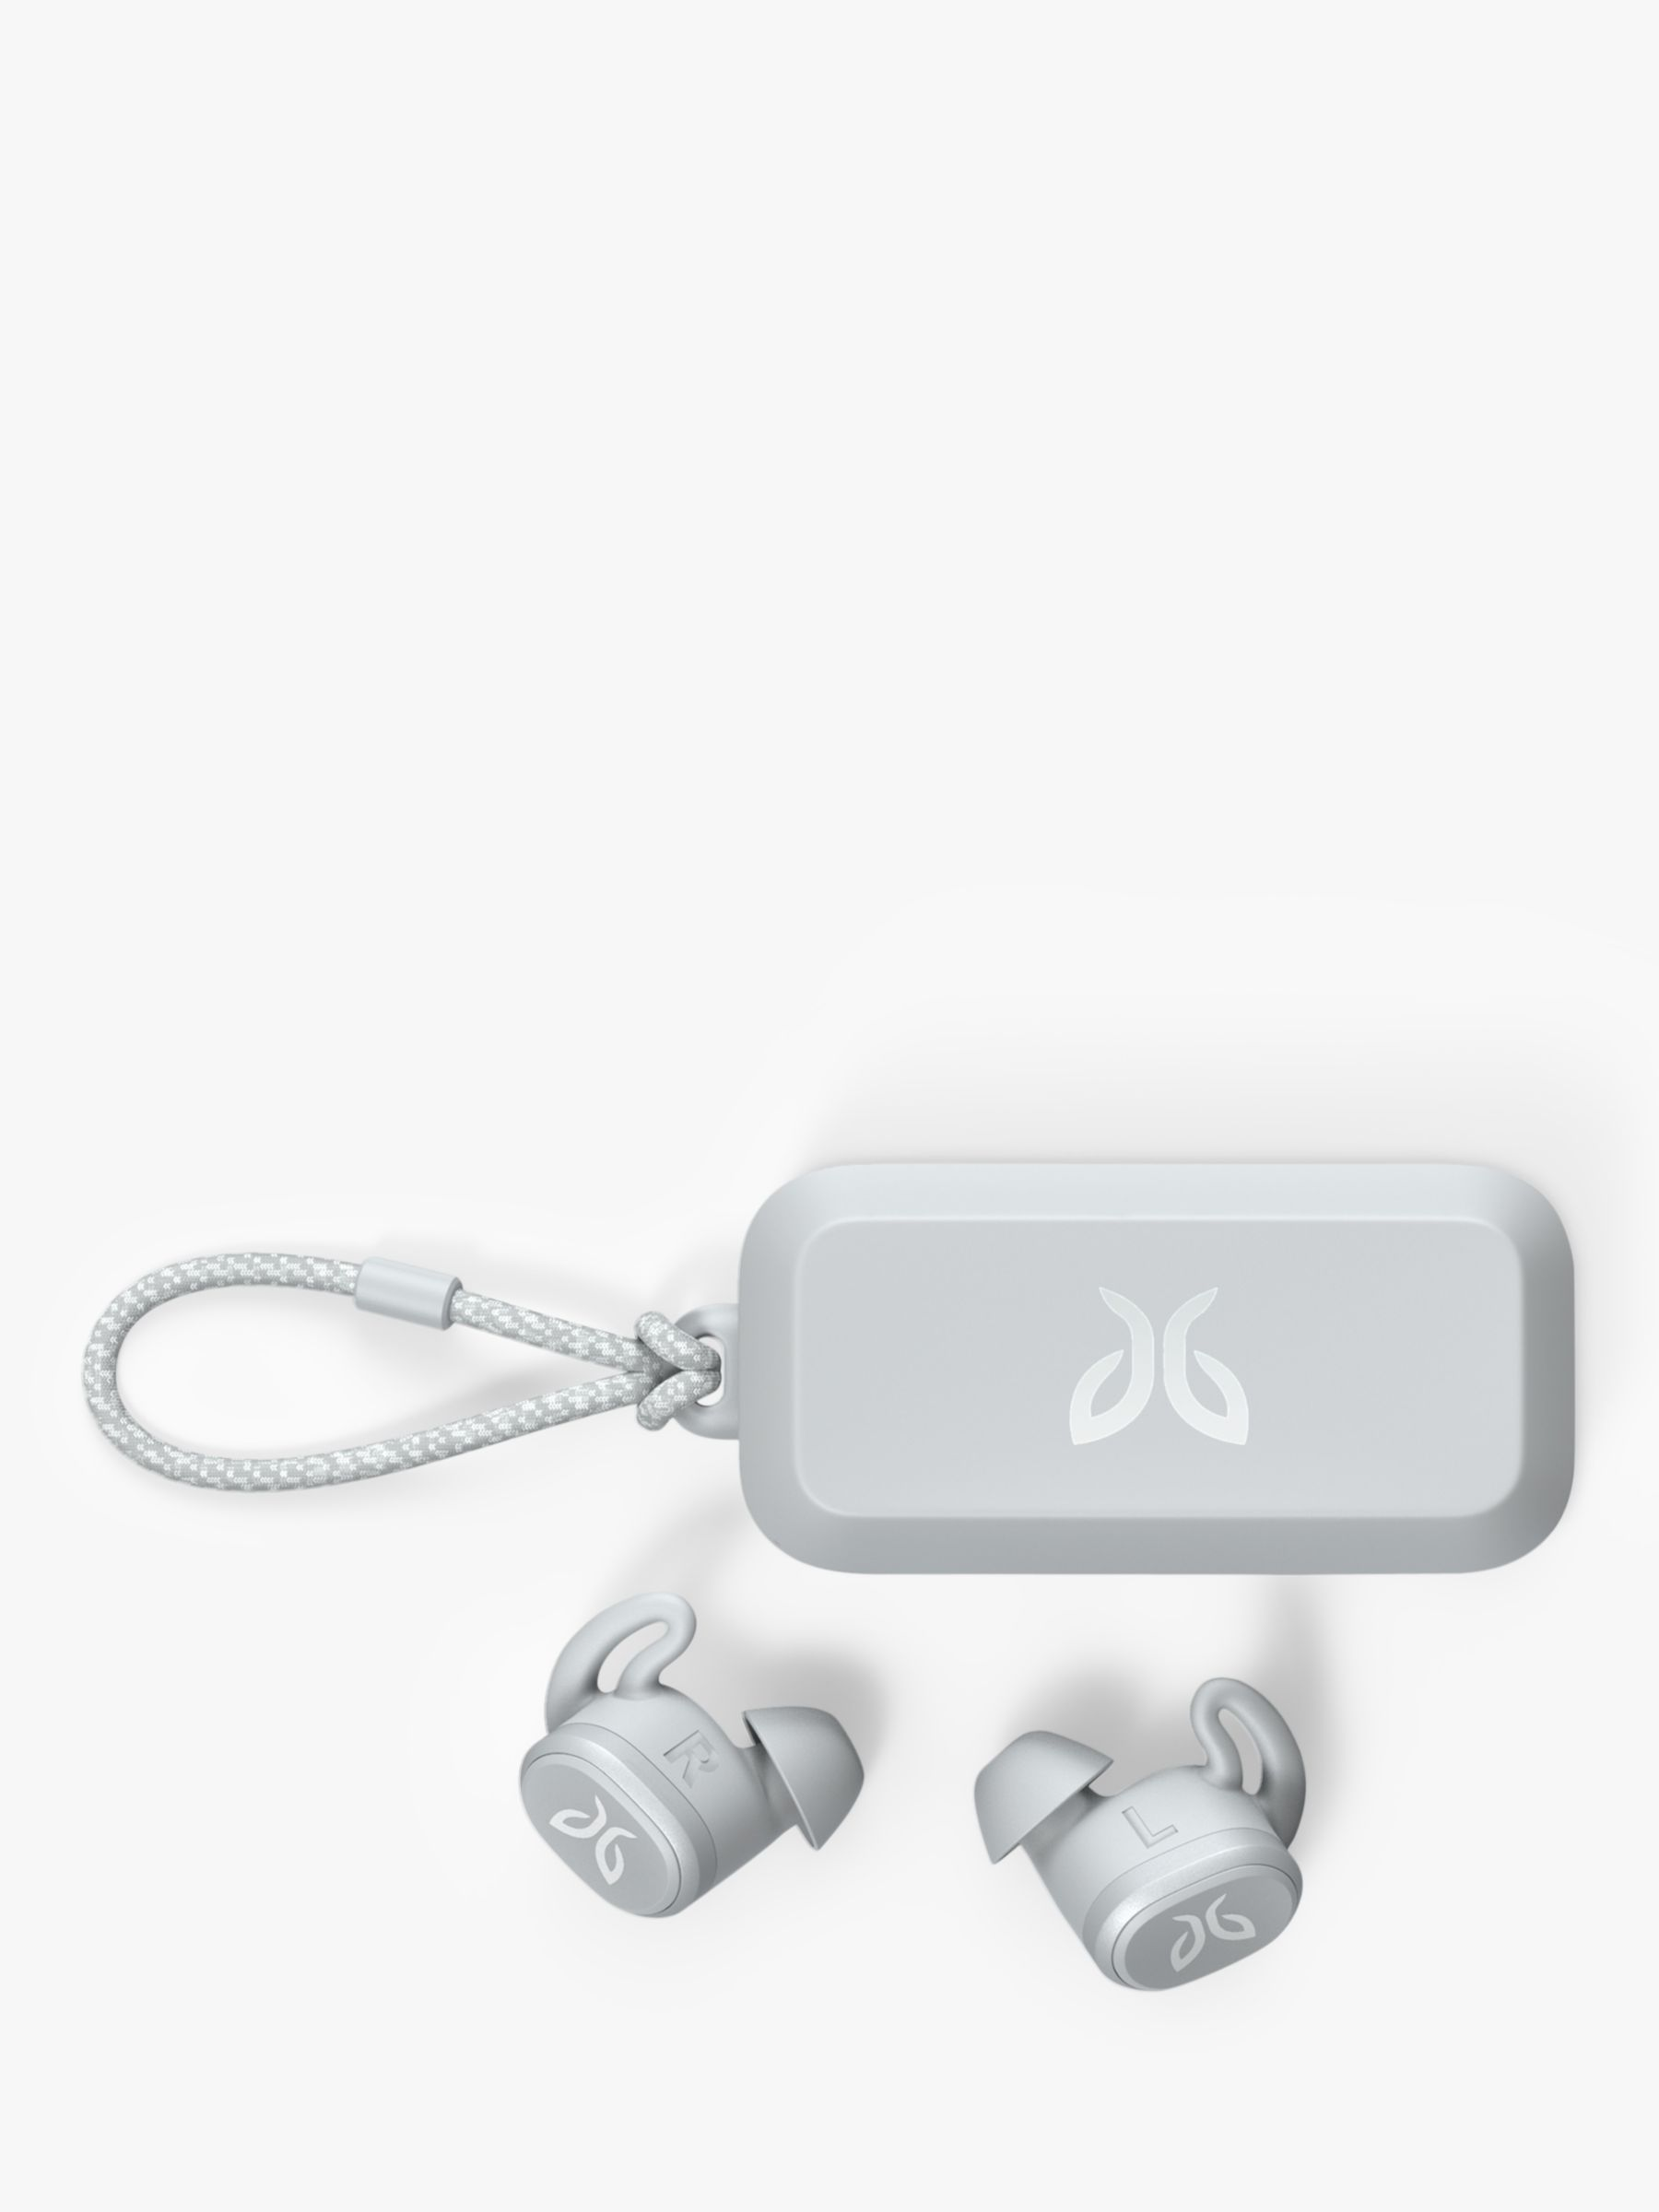 Jaybird Vista True Wireless Waterproof Bluetooth In-Ear Sport Headphones with Mic/Remote